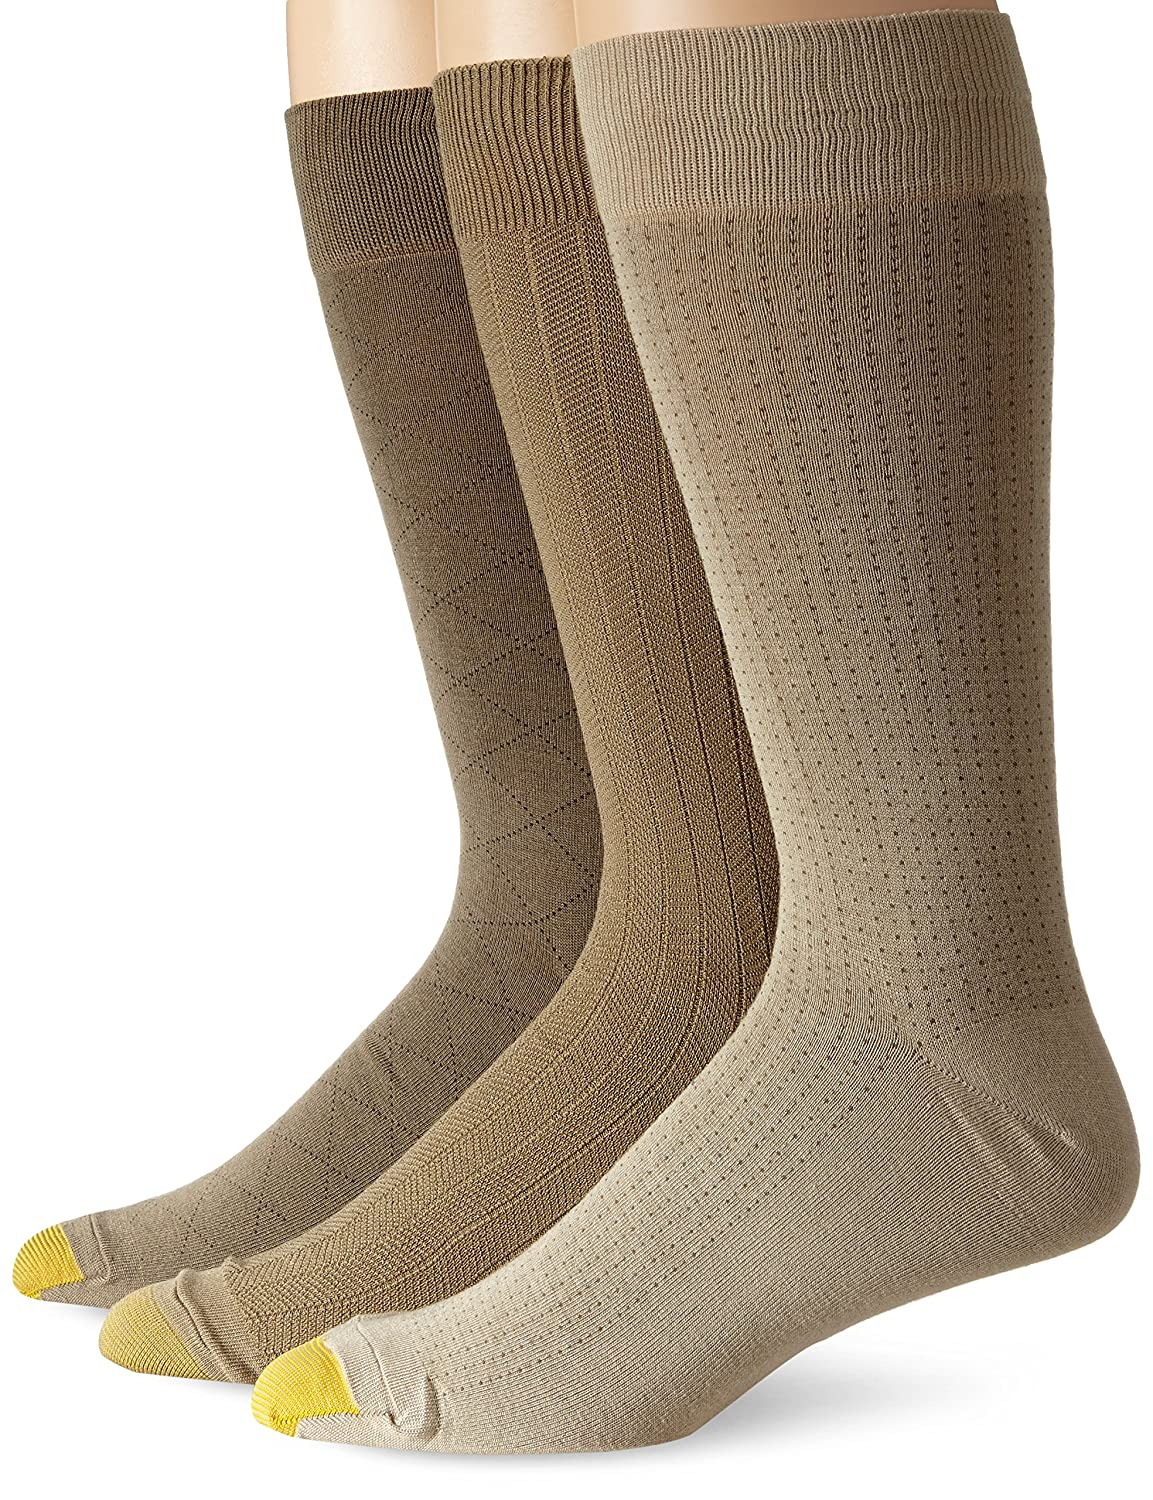 Gold Toe Men's Rayon Fashion 3 Pack Socks Dust/Winter Khaki/Taupe 13-15 Gold Toe Moretz - Men's 2055E